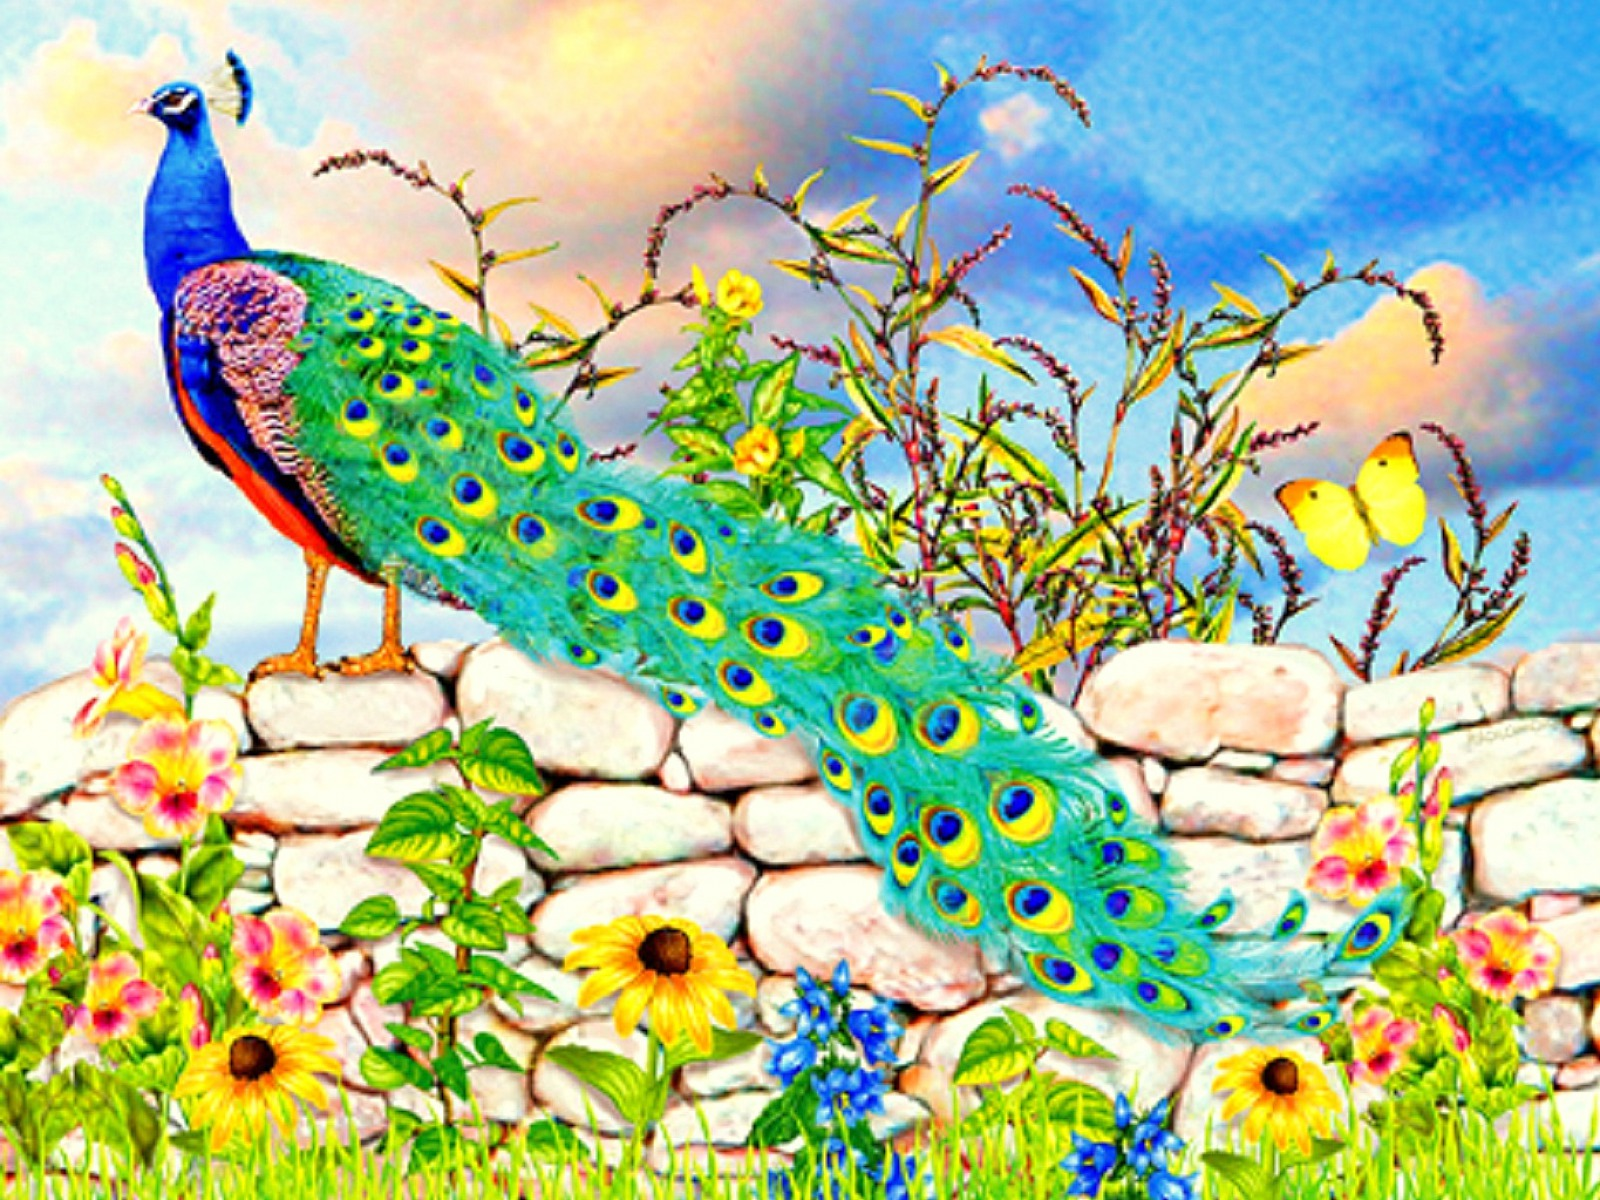 Peacock Art Photography Wallpaper Hq Backgrounds: Gallant Peacock Stone Wall Wallpapers